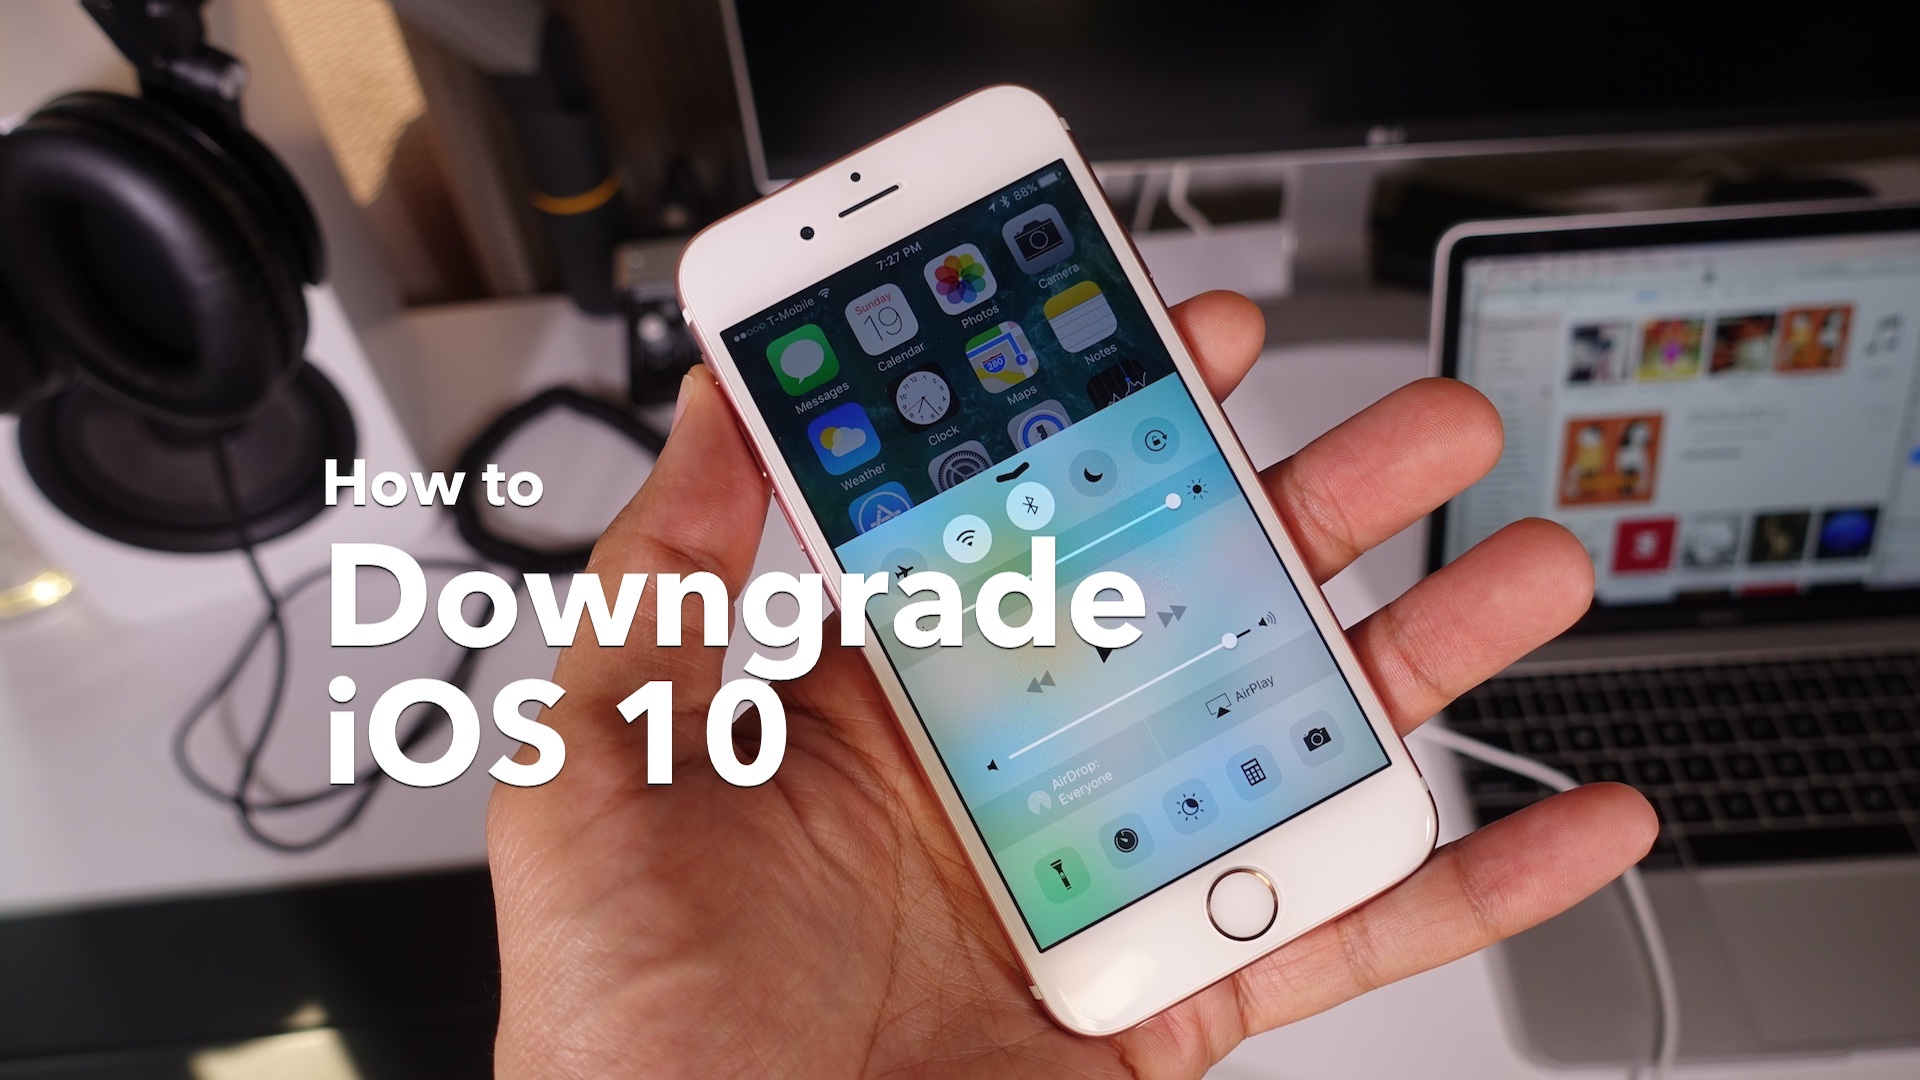 How to downgrade iOS 10 hero